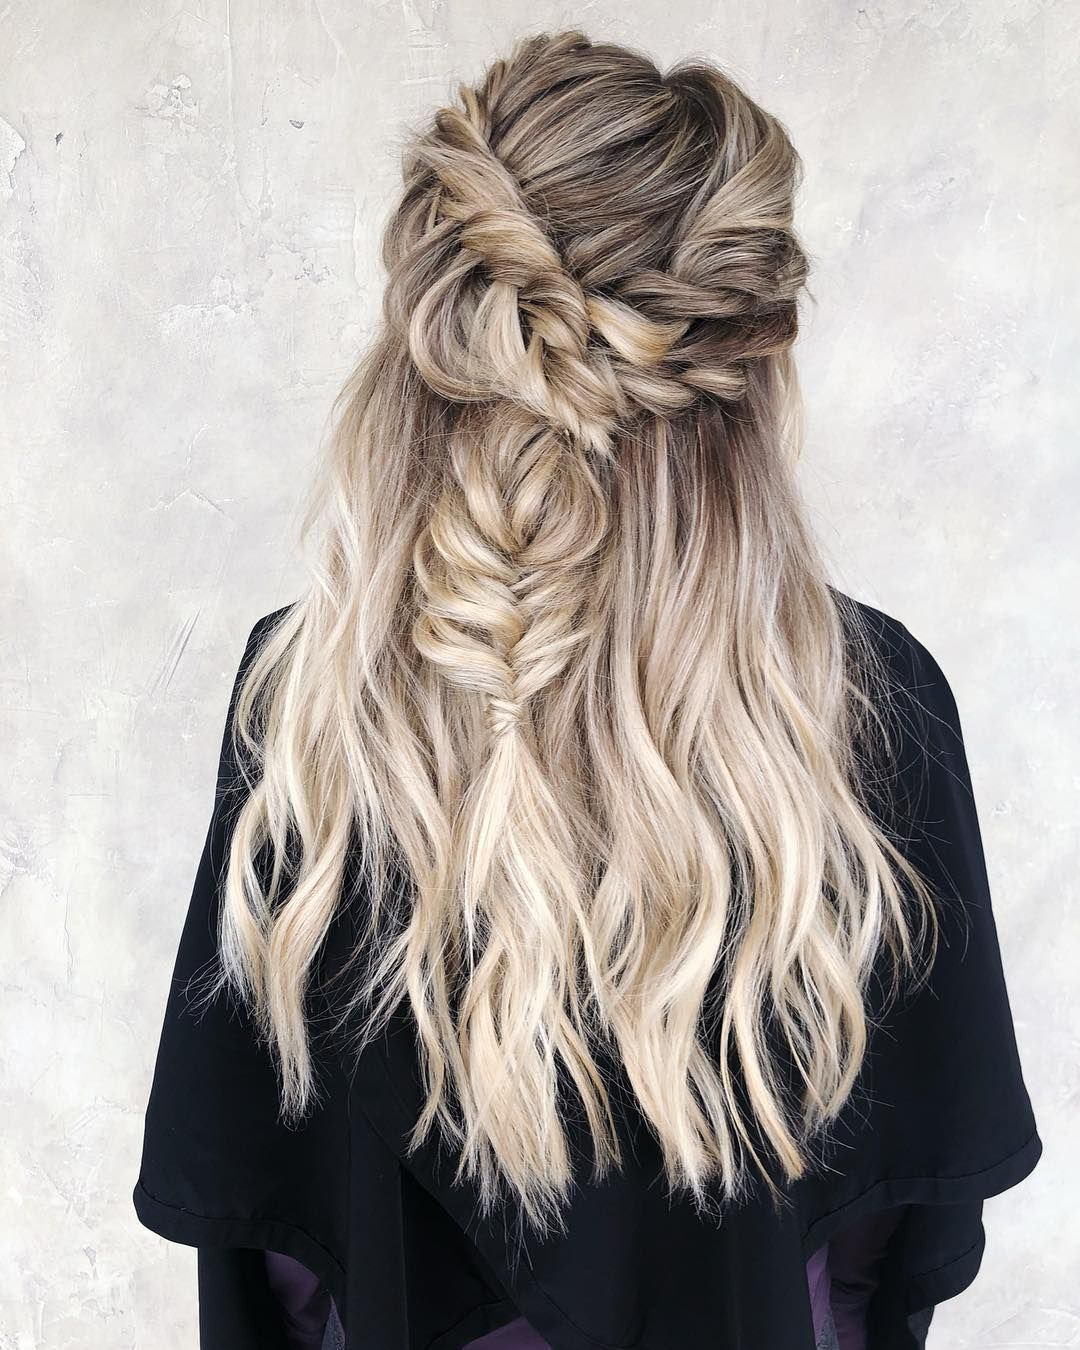 """Beautiful braided half up half down hairstyle – braids , hairstyles <a class=""""pintag"""" href=""""/explore/hair/"""" title=""""#hair explore Pinterest"""">#hair</a> <a class=""""pintag"""" href=""""/explore/hairstyles/"""" title=""""#hairstyles explore Pinterest"""">#hairstyles</a> <a class=""""pintag"""" href=""""/explore/braids/"""" title=""""#braids explore Pinterest"""">#braids</a> <a class=""""pintag"""" href=""""/explore/halfuphalfdown/"""" title=""""#halfuphalfdown explore Pinterest"""">#halfuphalfdown</a> <a class=""""pintag"""" href=""""/explore/braidhair/"""" title=""""#braidhair explore Pinterest"""">#braidhair</a> <a class=""""pintag"""" href=""""/explore/Braidedhairstyles/"""" title=""""#Braidedhairstyles explore Pinterest"""">#Braidedhairstyles</a><p><a href=""""http://www.homeinteriordesign.org/2018/02/short-guide-to-interior-decoration.html"""">Short guide to interior decoration</a></p>"""